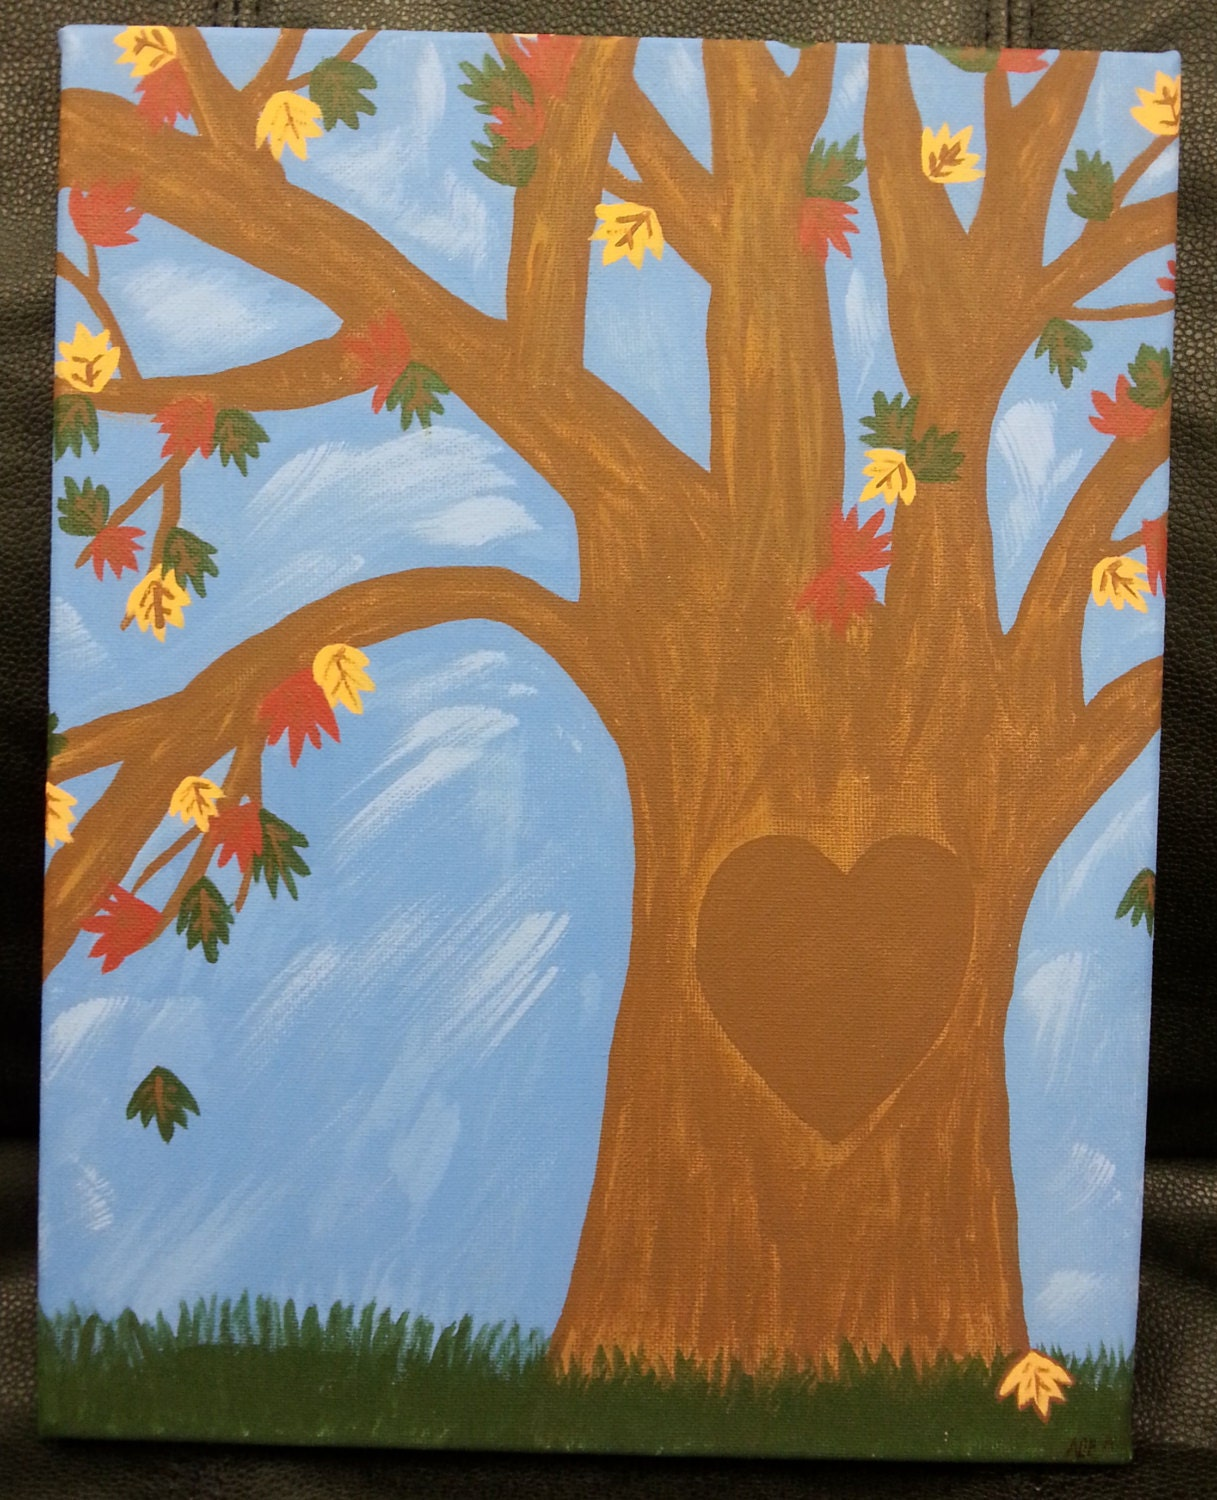 Wedding Gift Canvas Painting : Personalized Fall Wedding Gift Canvas Art Painting by blisshappens